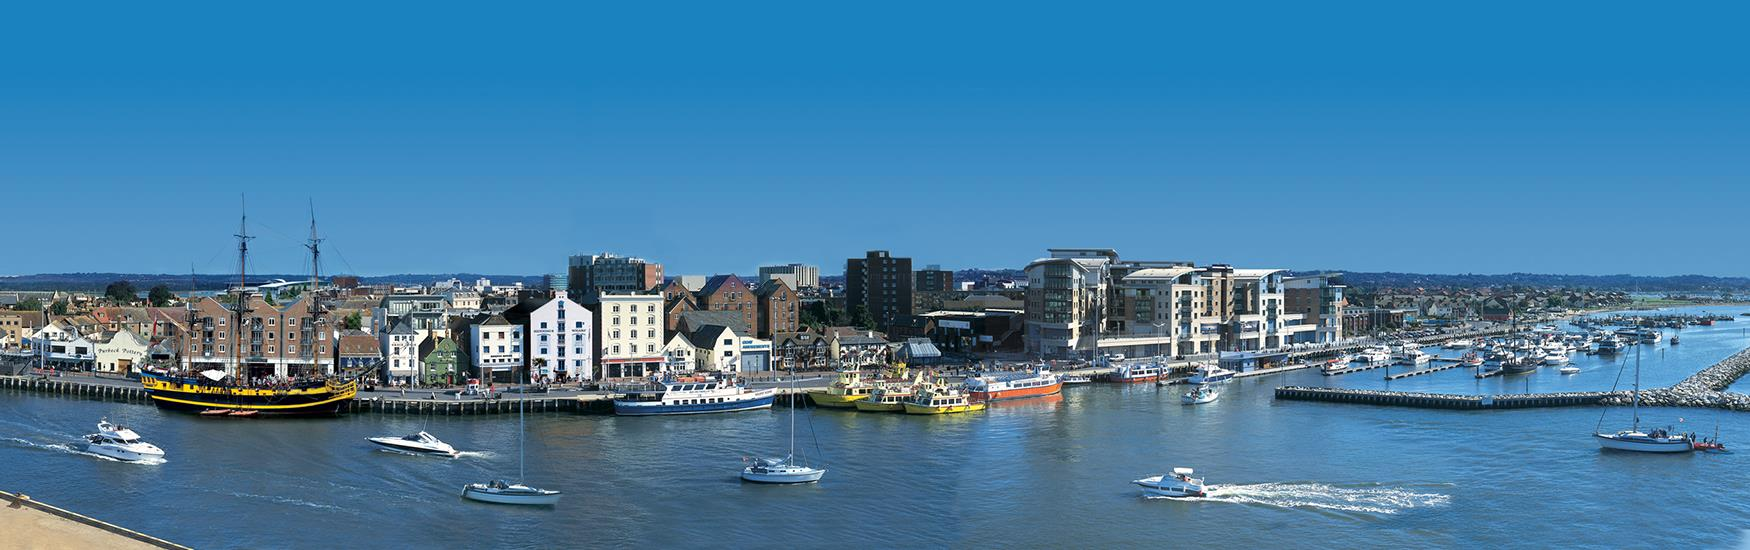 Poole Group Friendly Accommodation